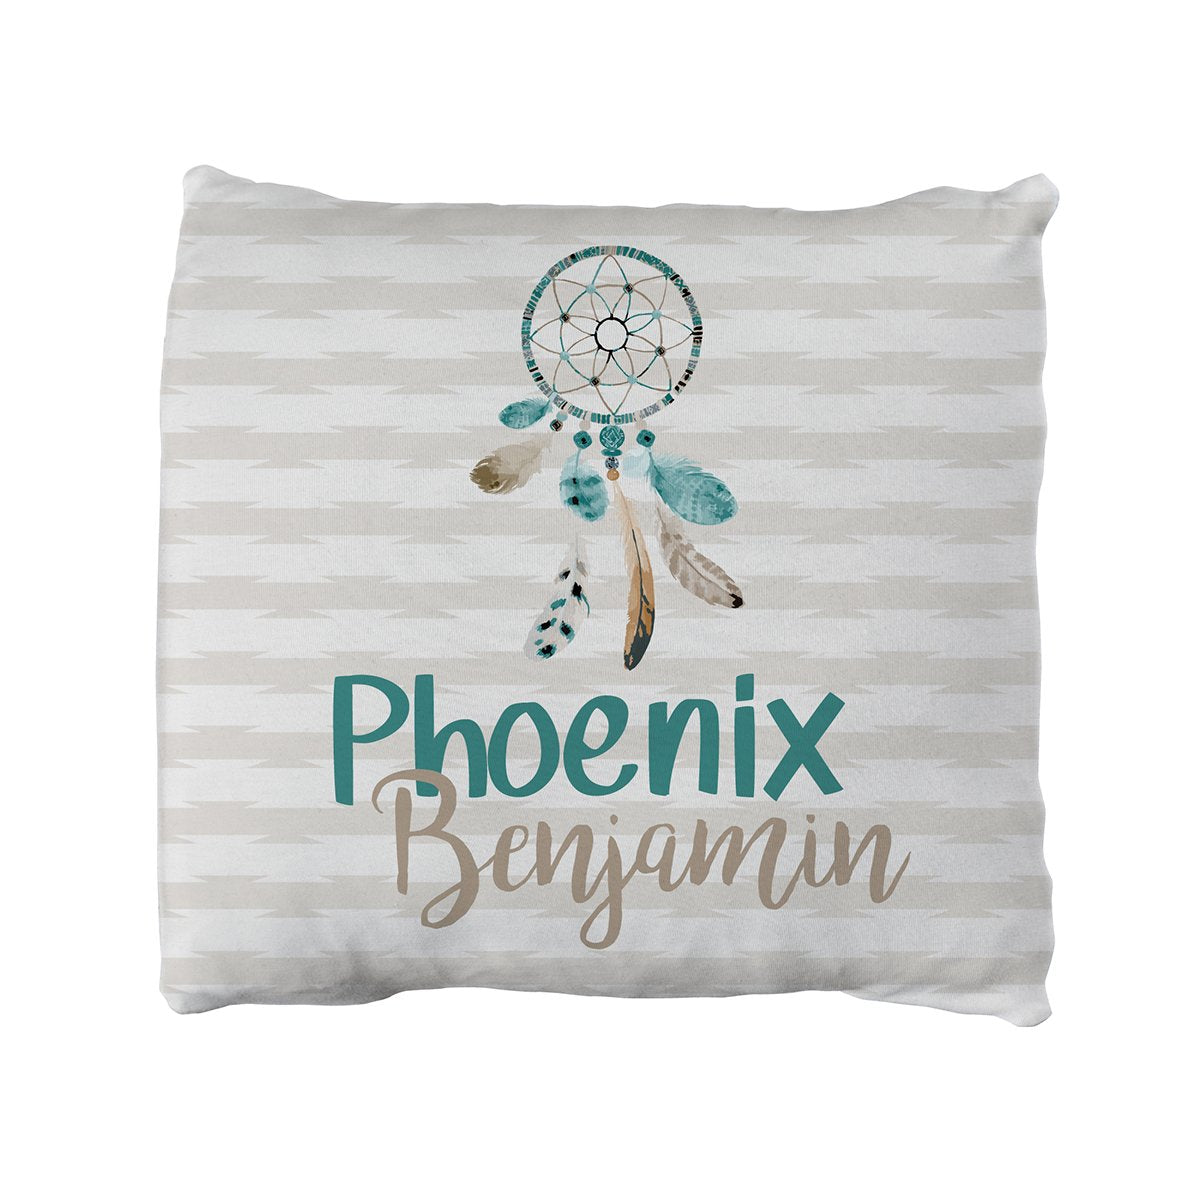 Phoenix's Dream Catcher | Big Kid Throw Pillow